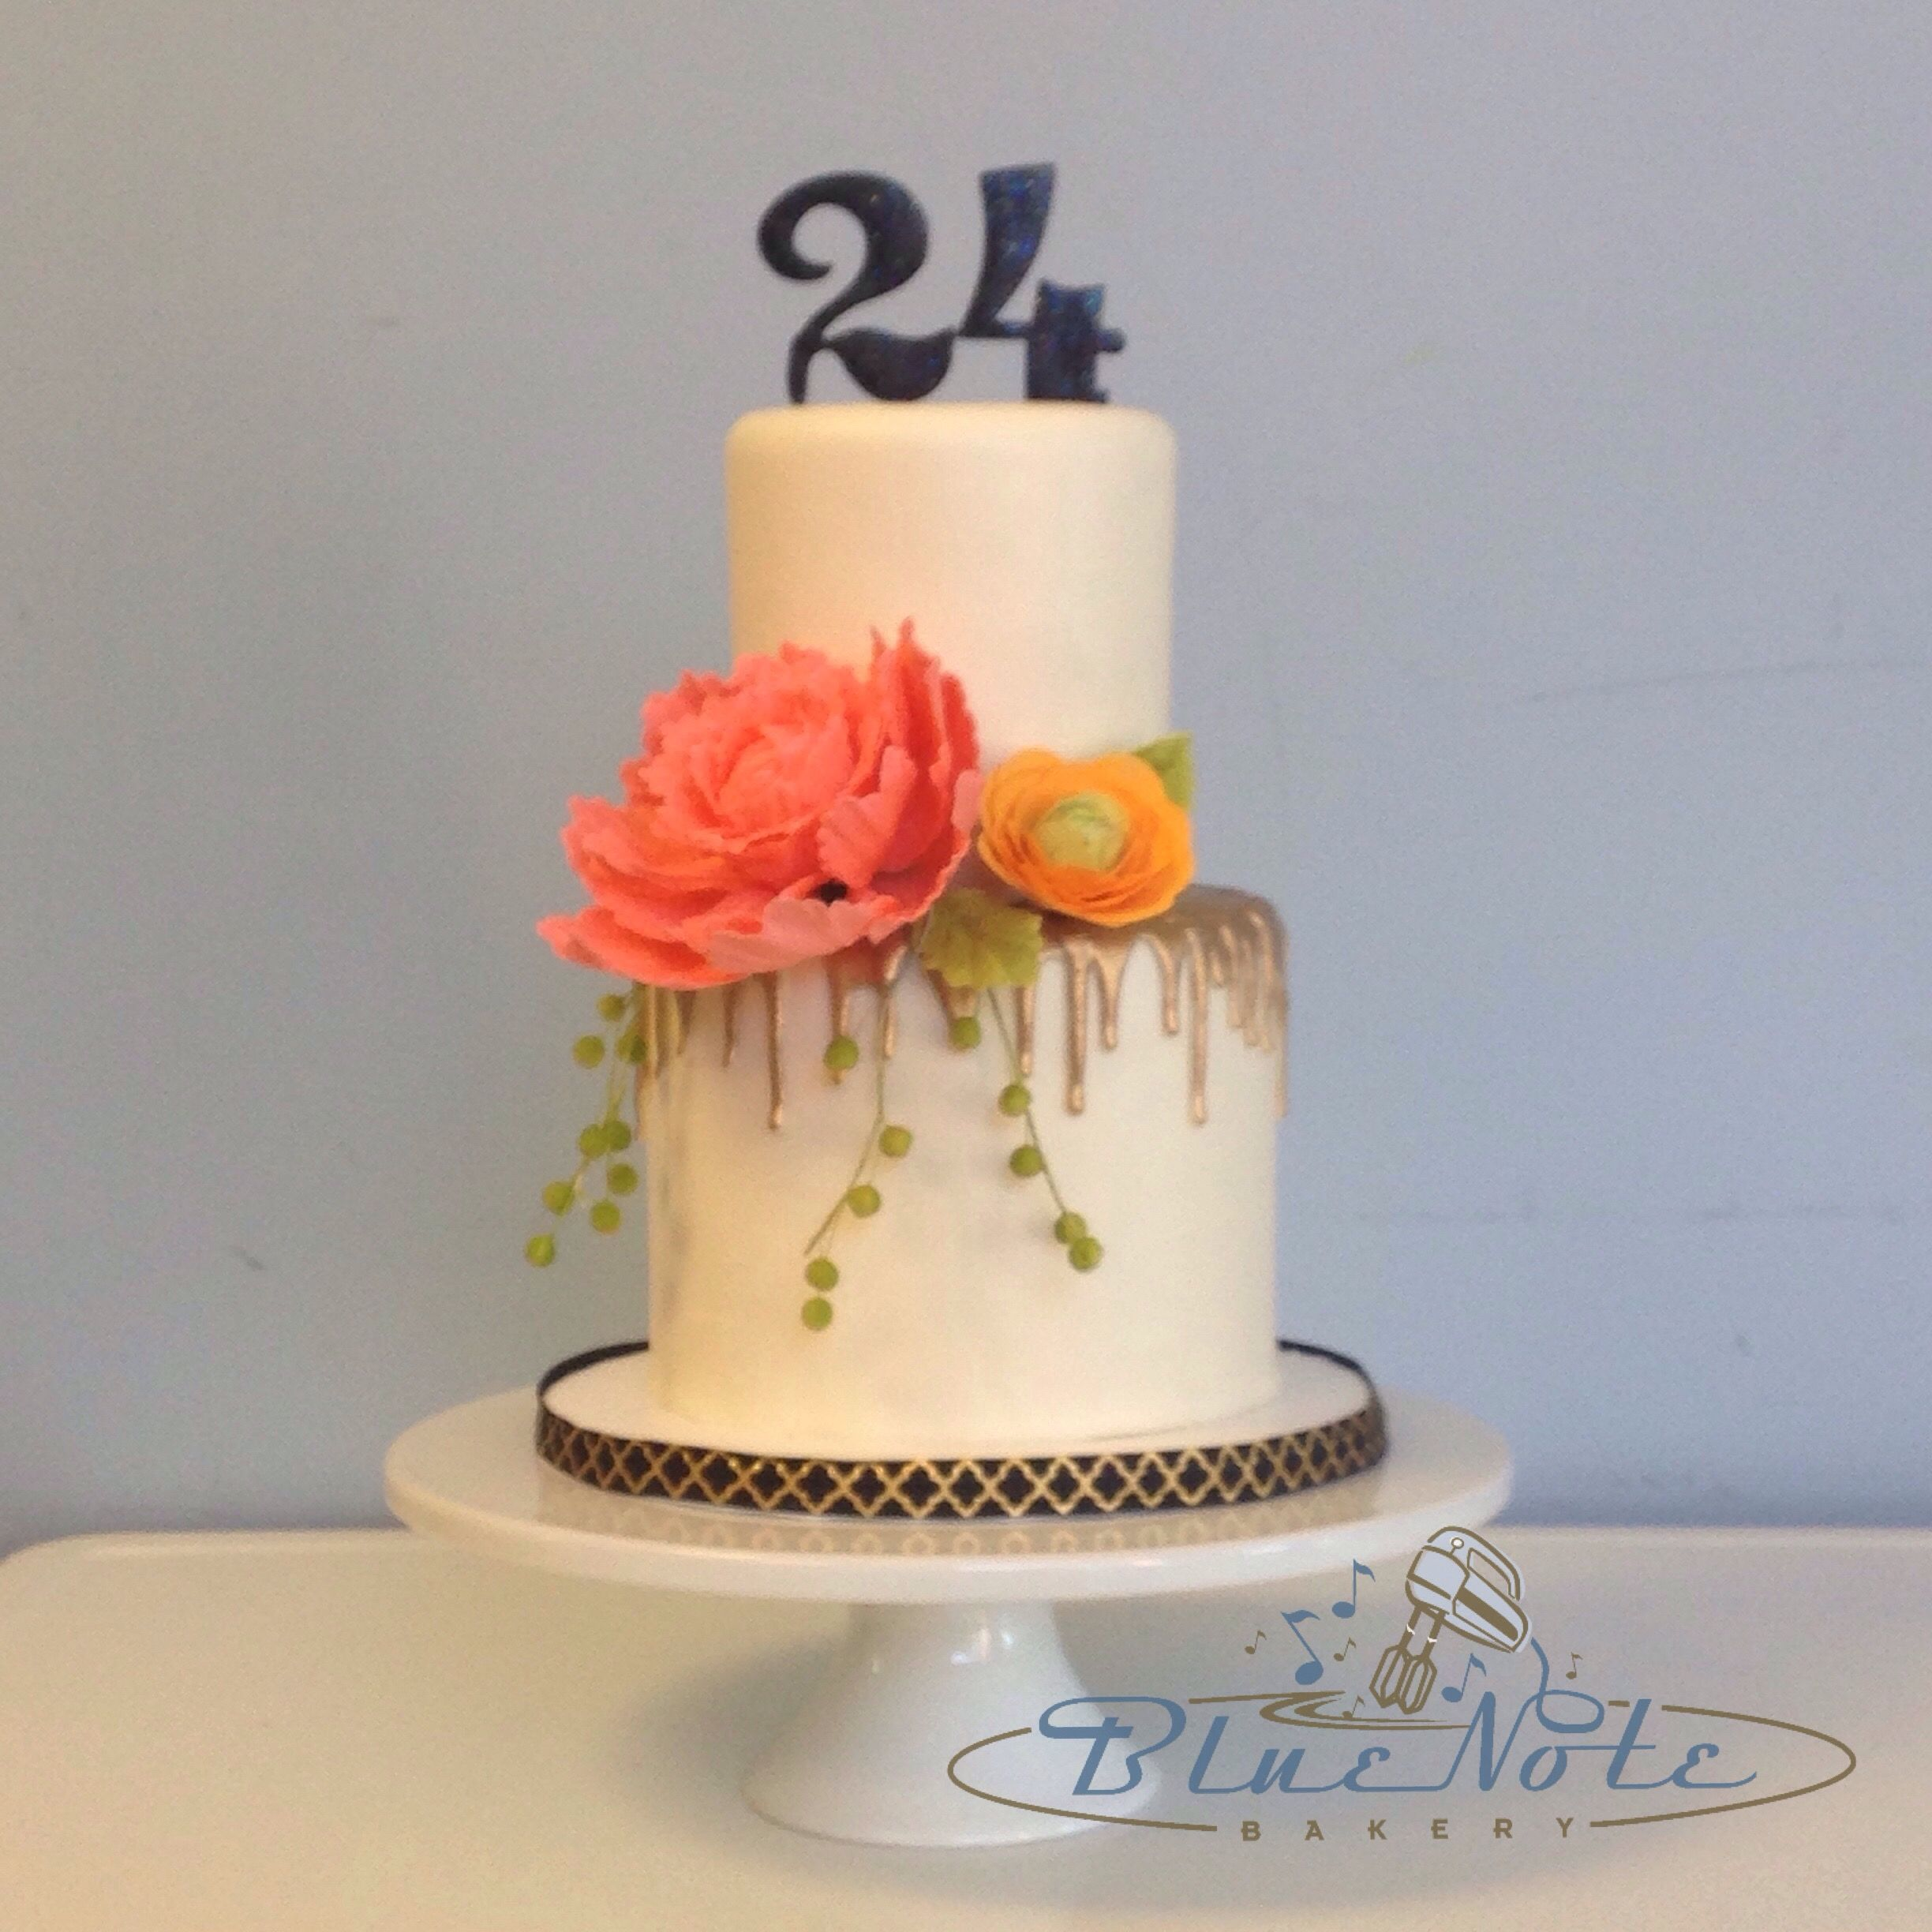 Stupendous Coral Sugar Flowers For A 24Th Birthday 24Th Birthday Cake Funny Birthday Cards Online Kookostrdamsfinfo